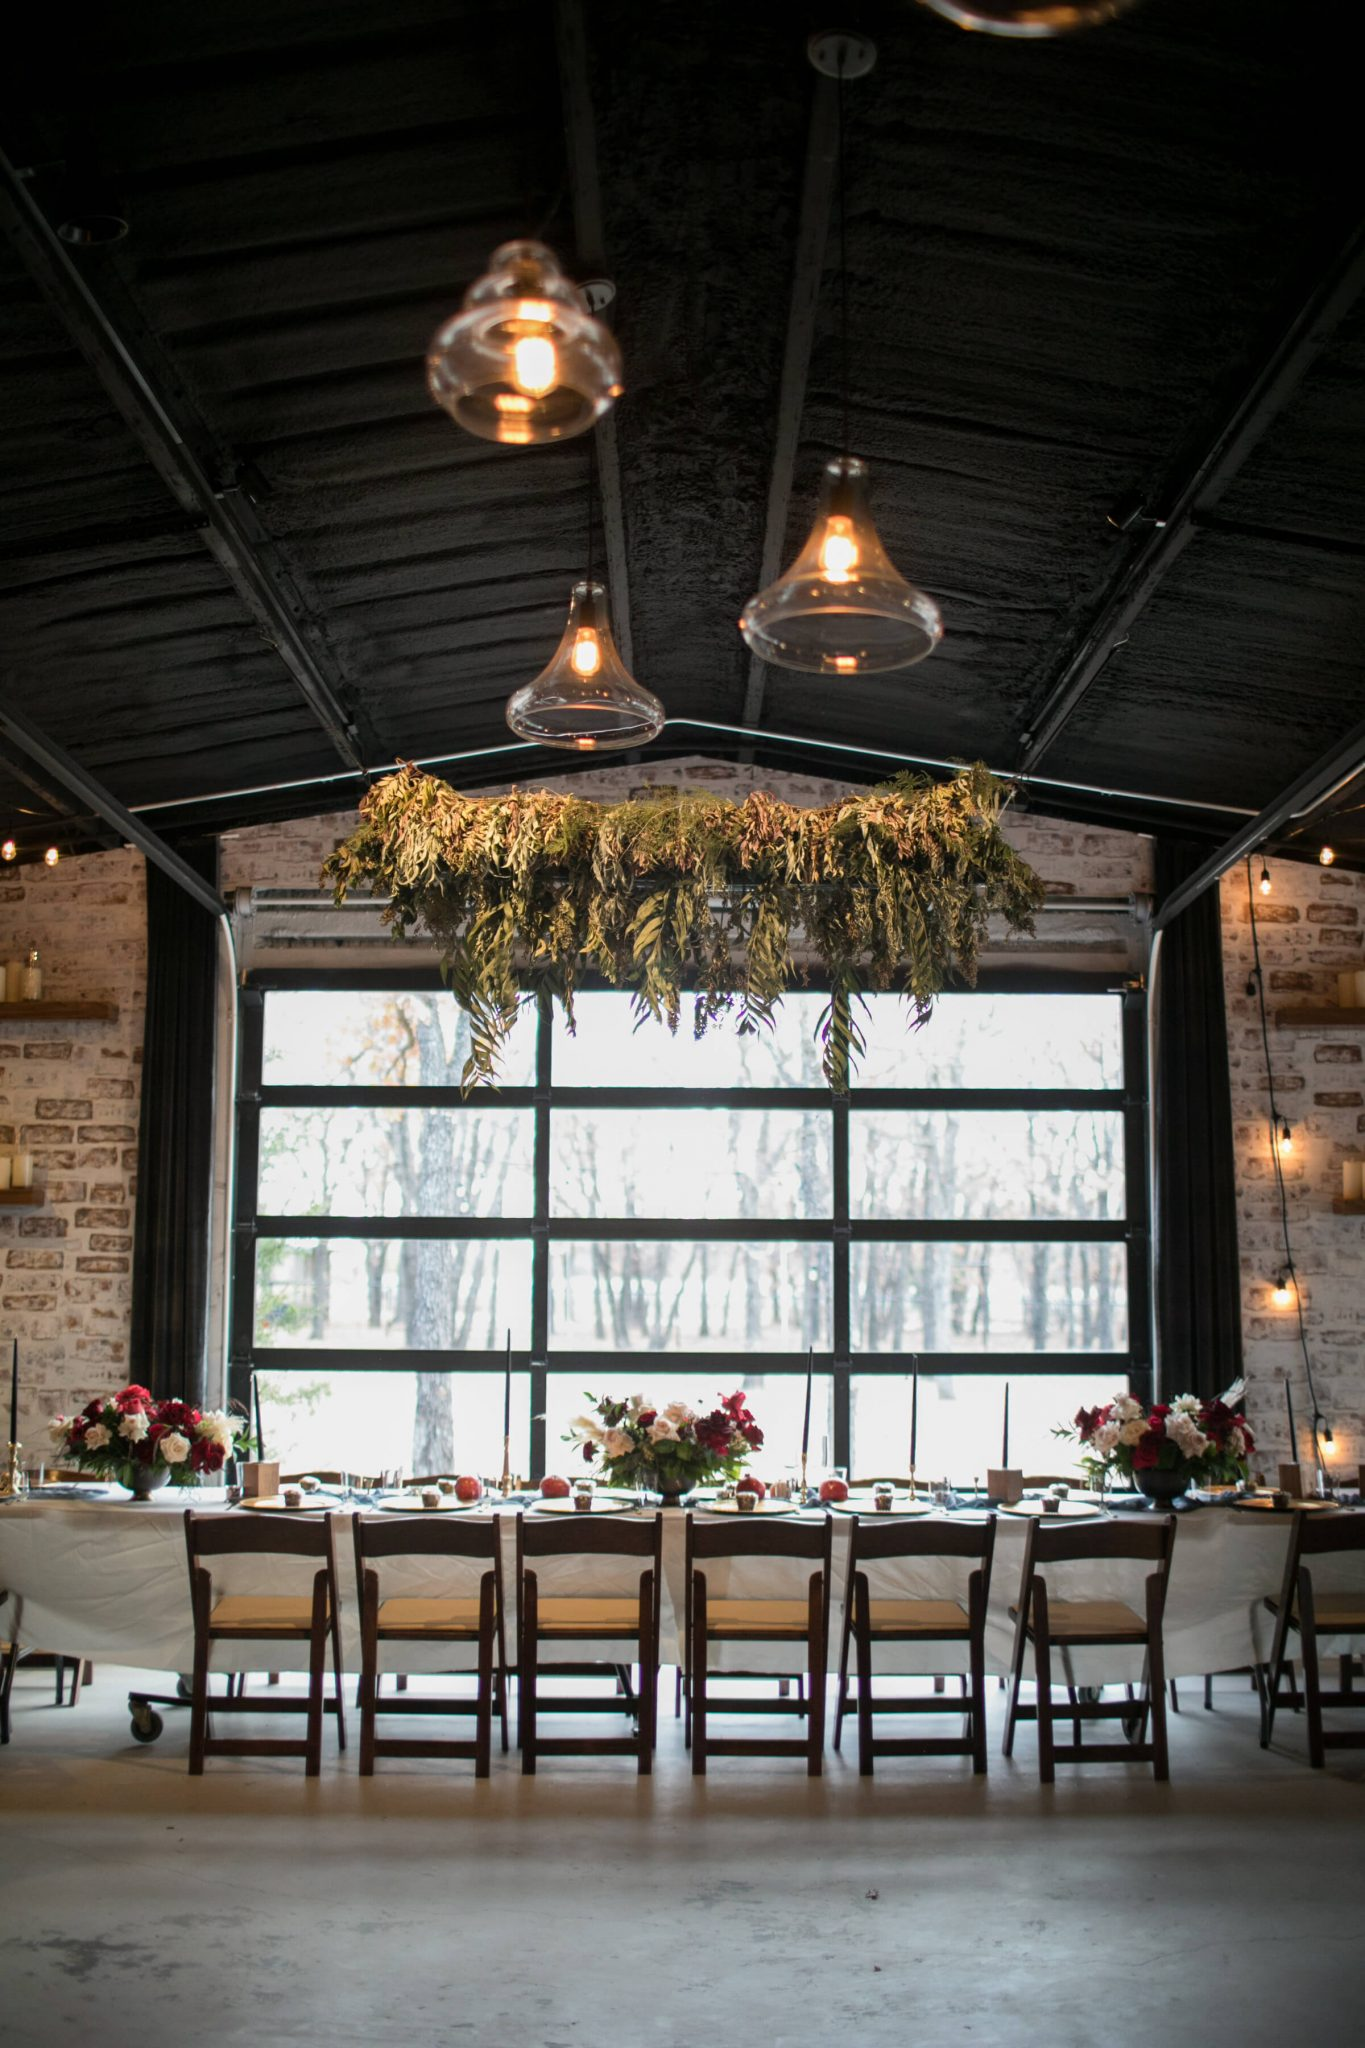 The interior of The Forge comes with decor included, but can be as ornate or understated as the bride and groom like.